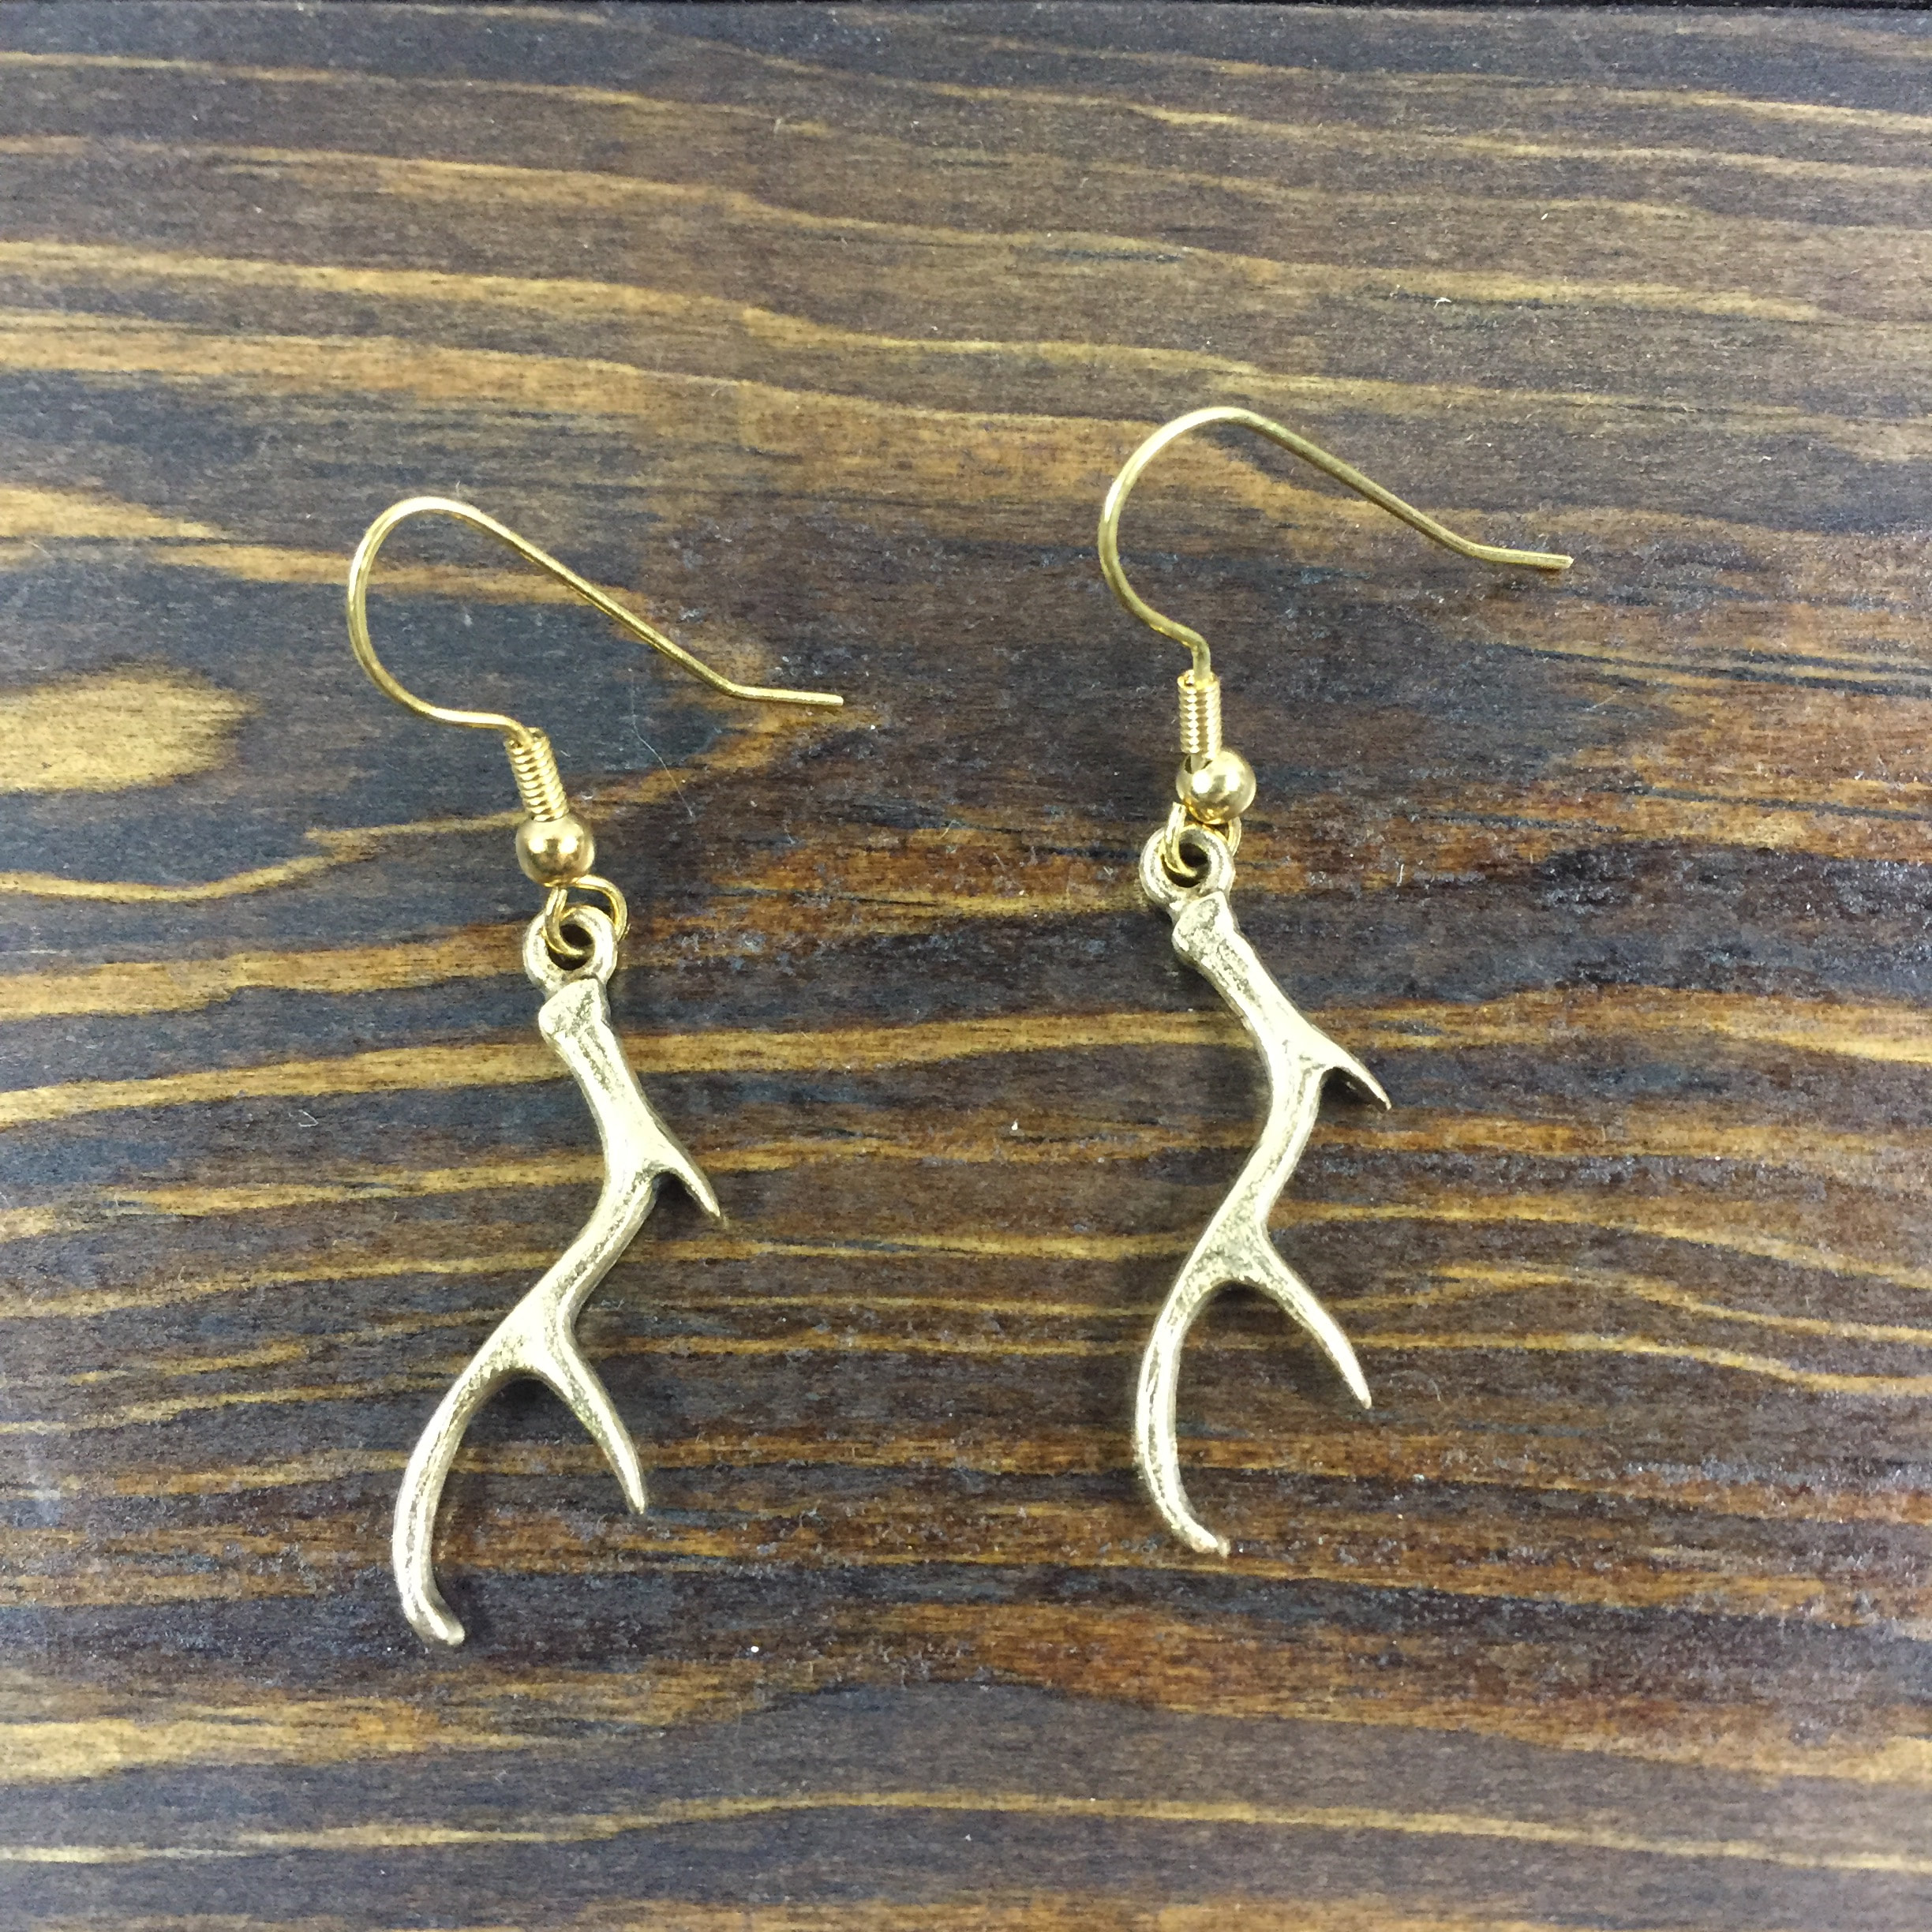 3afaeefc8 ... Antler Earrings (Silver or Gold). Loading.